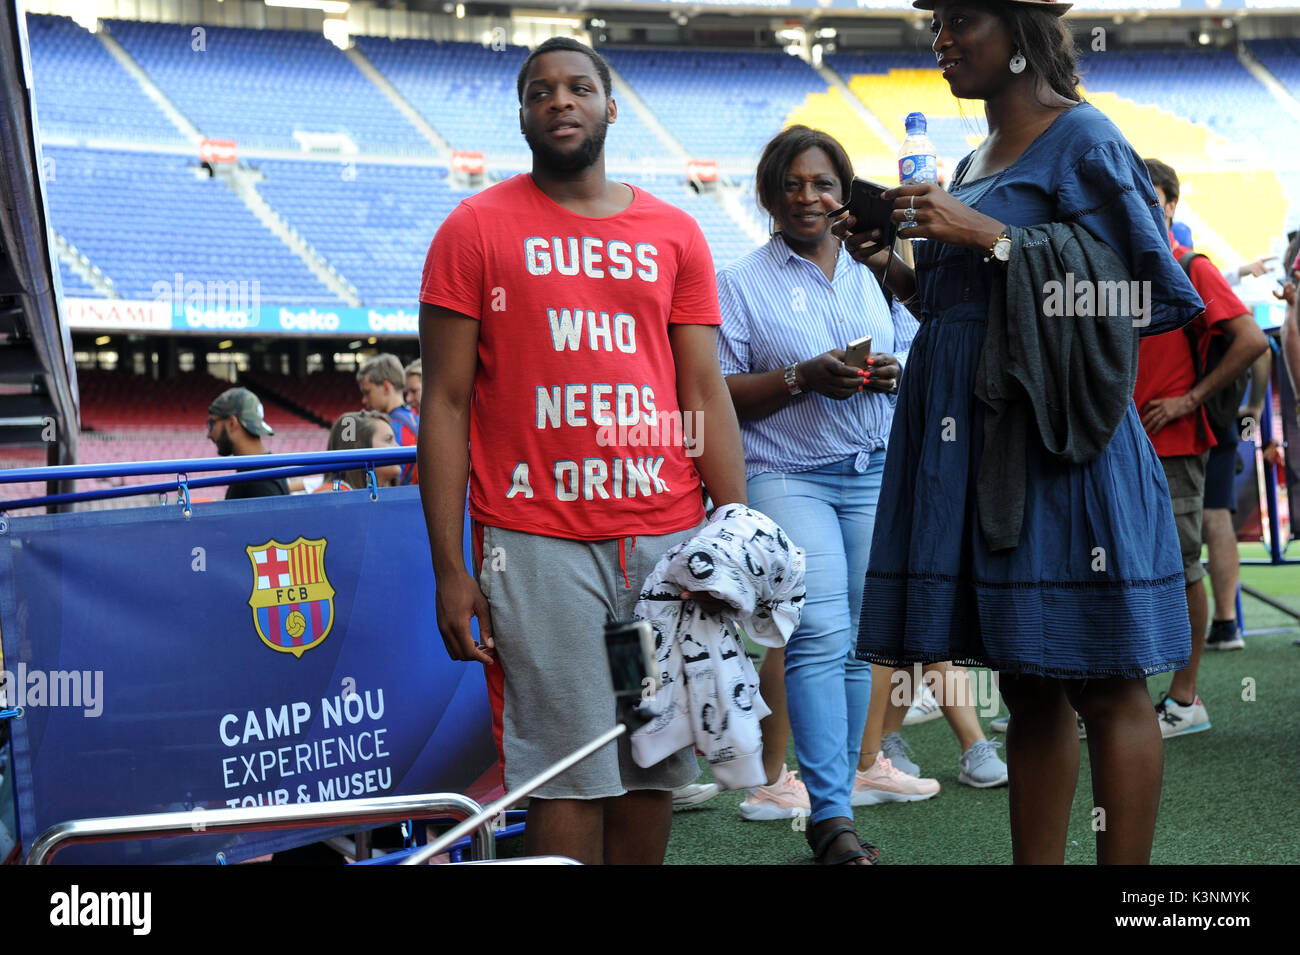 Camp Nou Experience Tour and Museum. - Stock Image